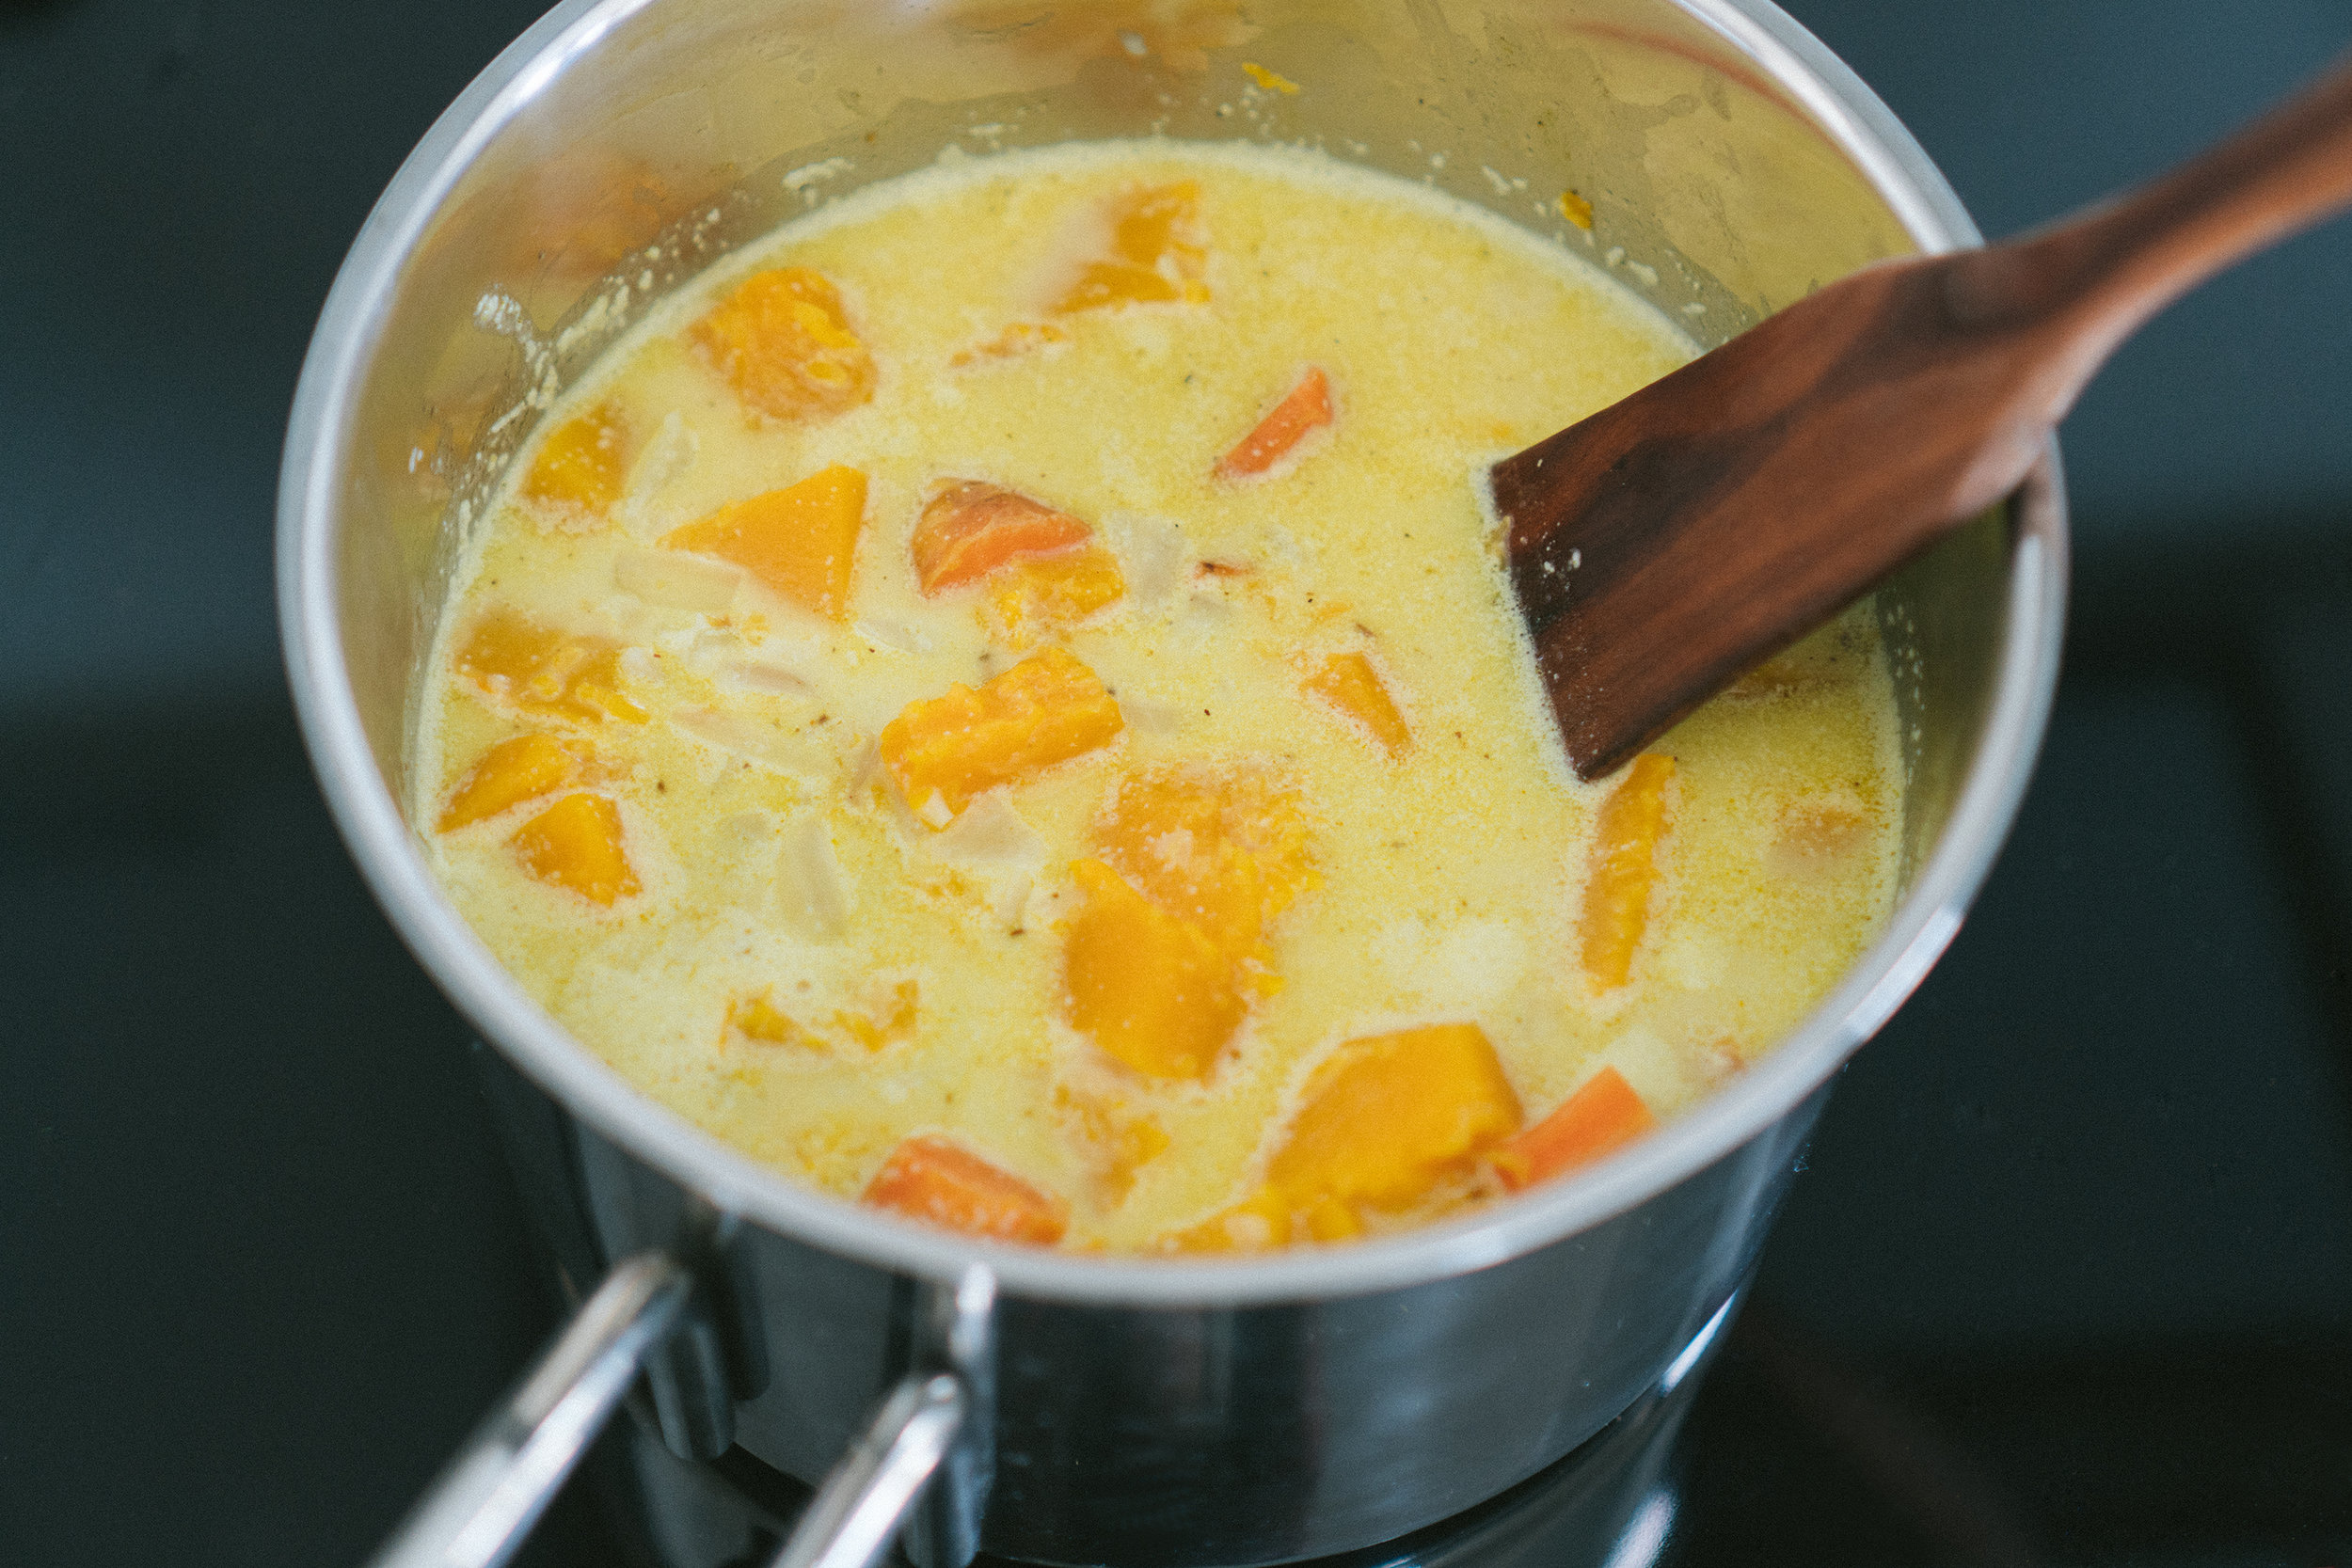 Pour in coconut milk, stock or water and fish sauce if using. Let it simmer for 10 minutes.